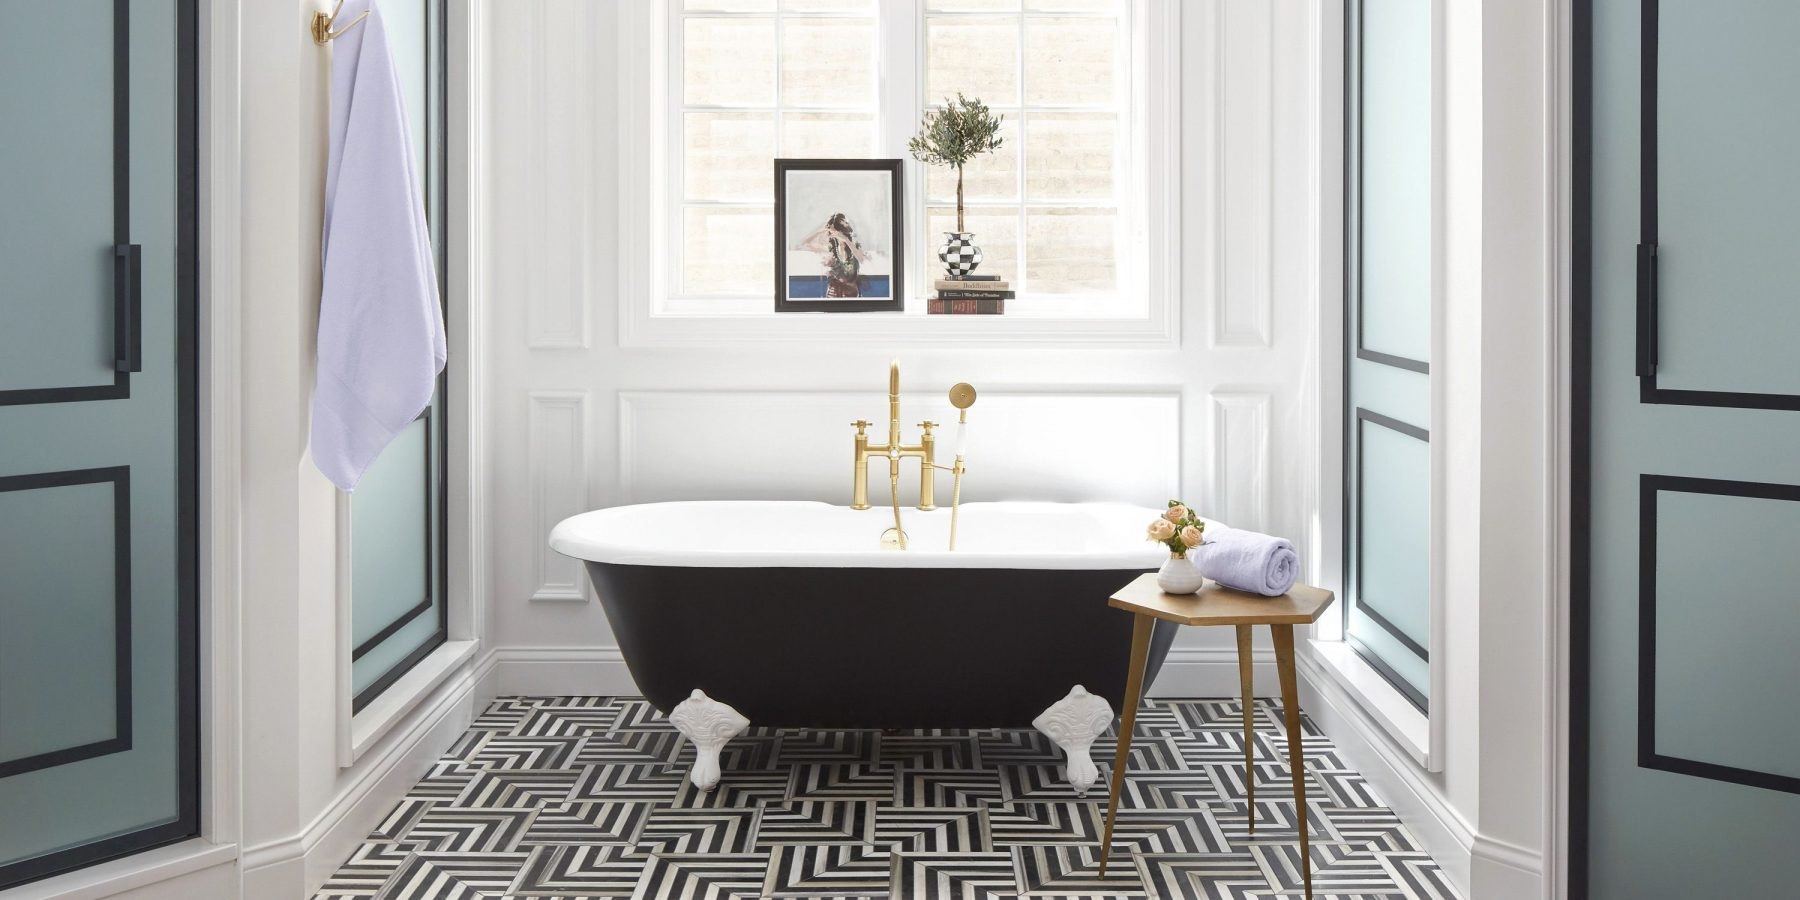 salle de bain les 10 tendances cl de 2019 la journaliste. Black Bedroom Furniture Sets. Home Design Ideas